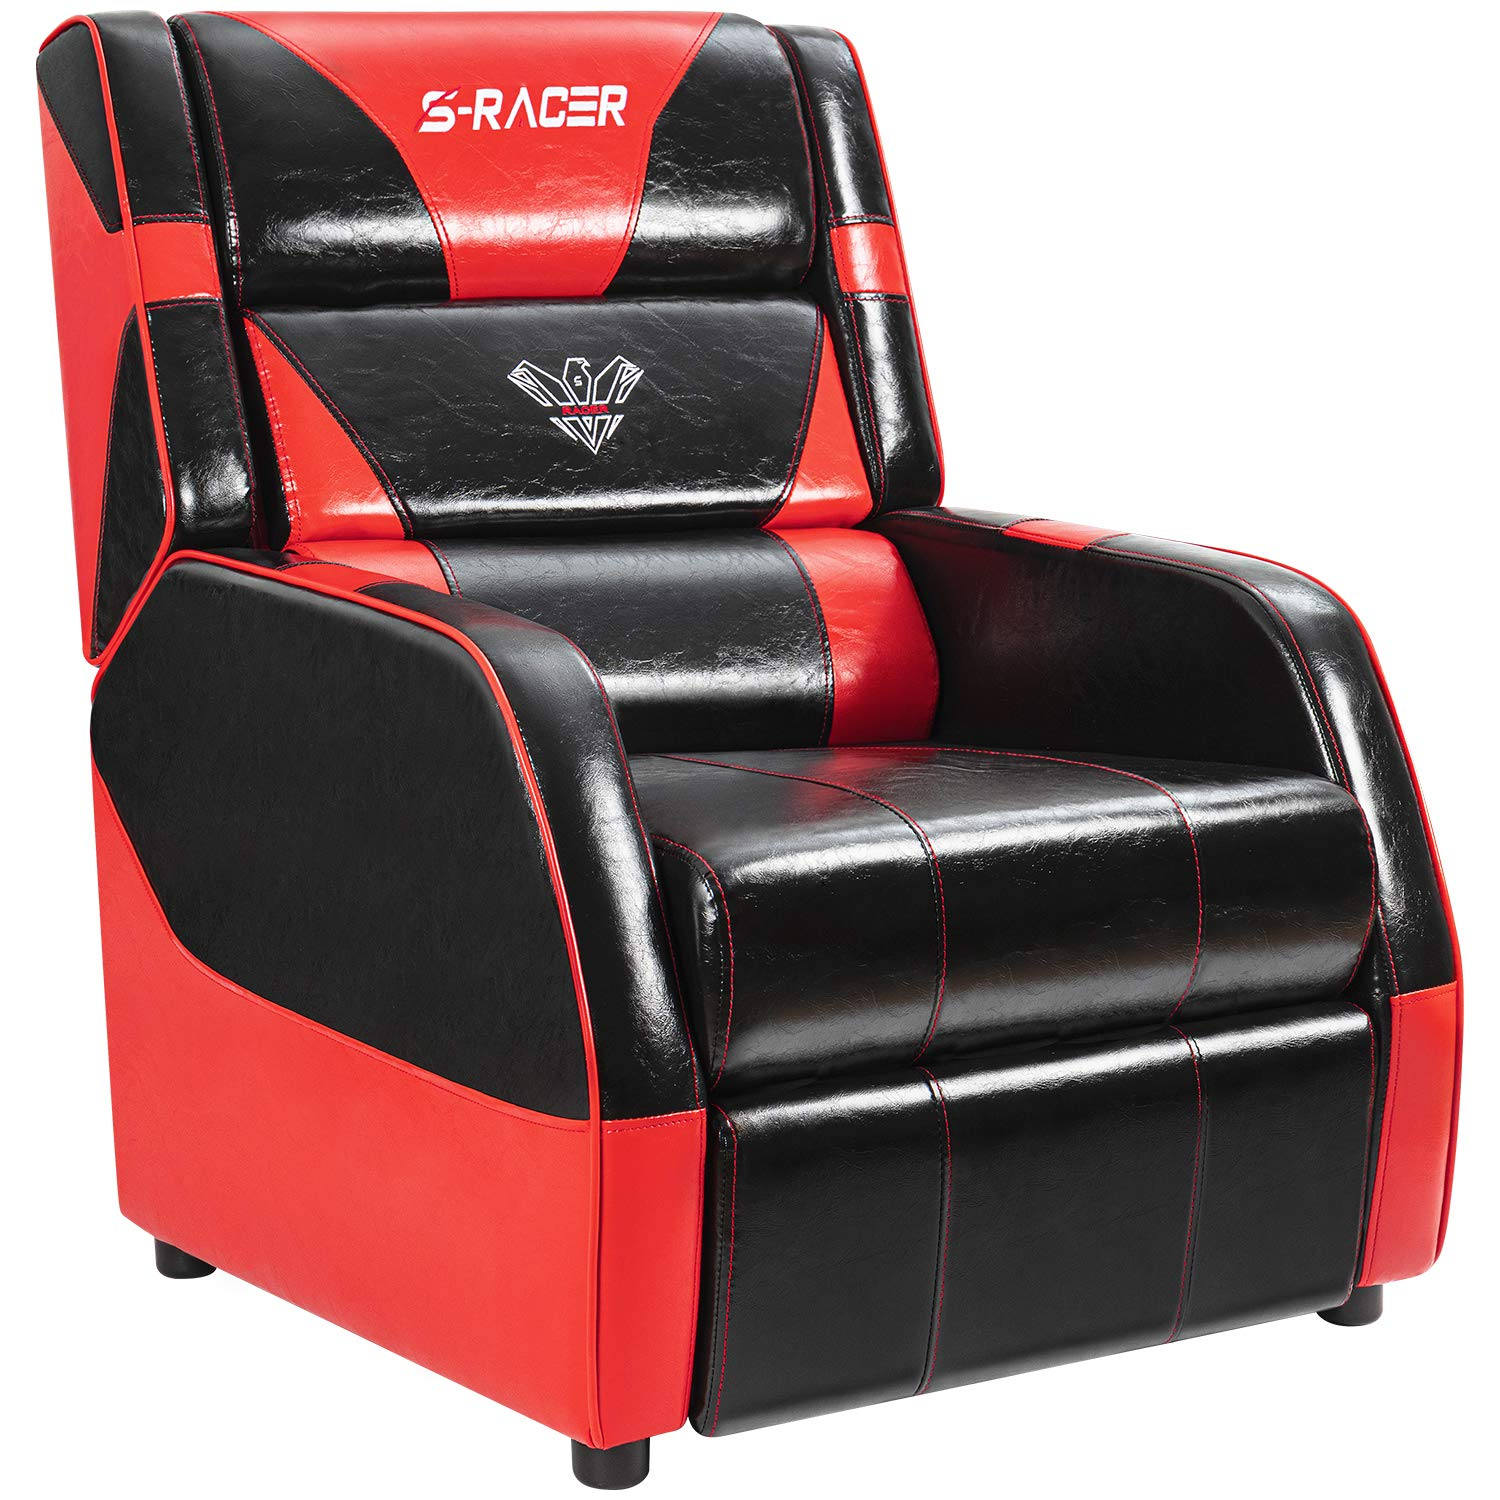 Gaming Recliner Chair Living Room Sofa Single Recliner PU Leather Recliner Seat Home Theater Seating with Removable Cushions Sracer (Red) by Homall